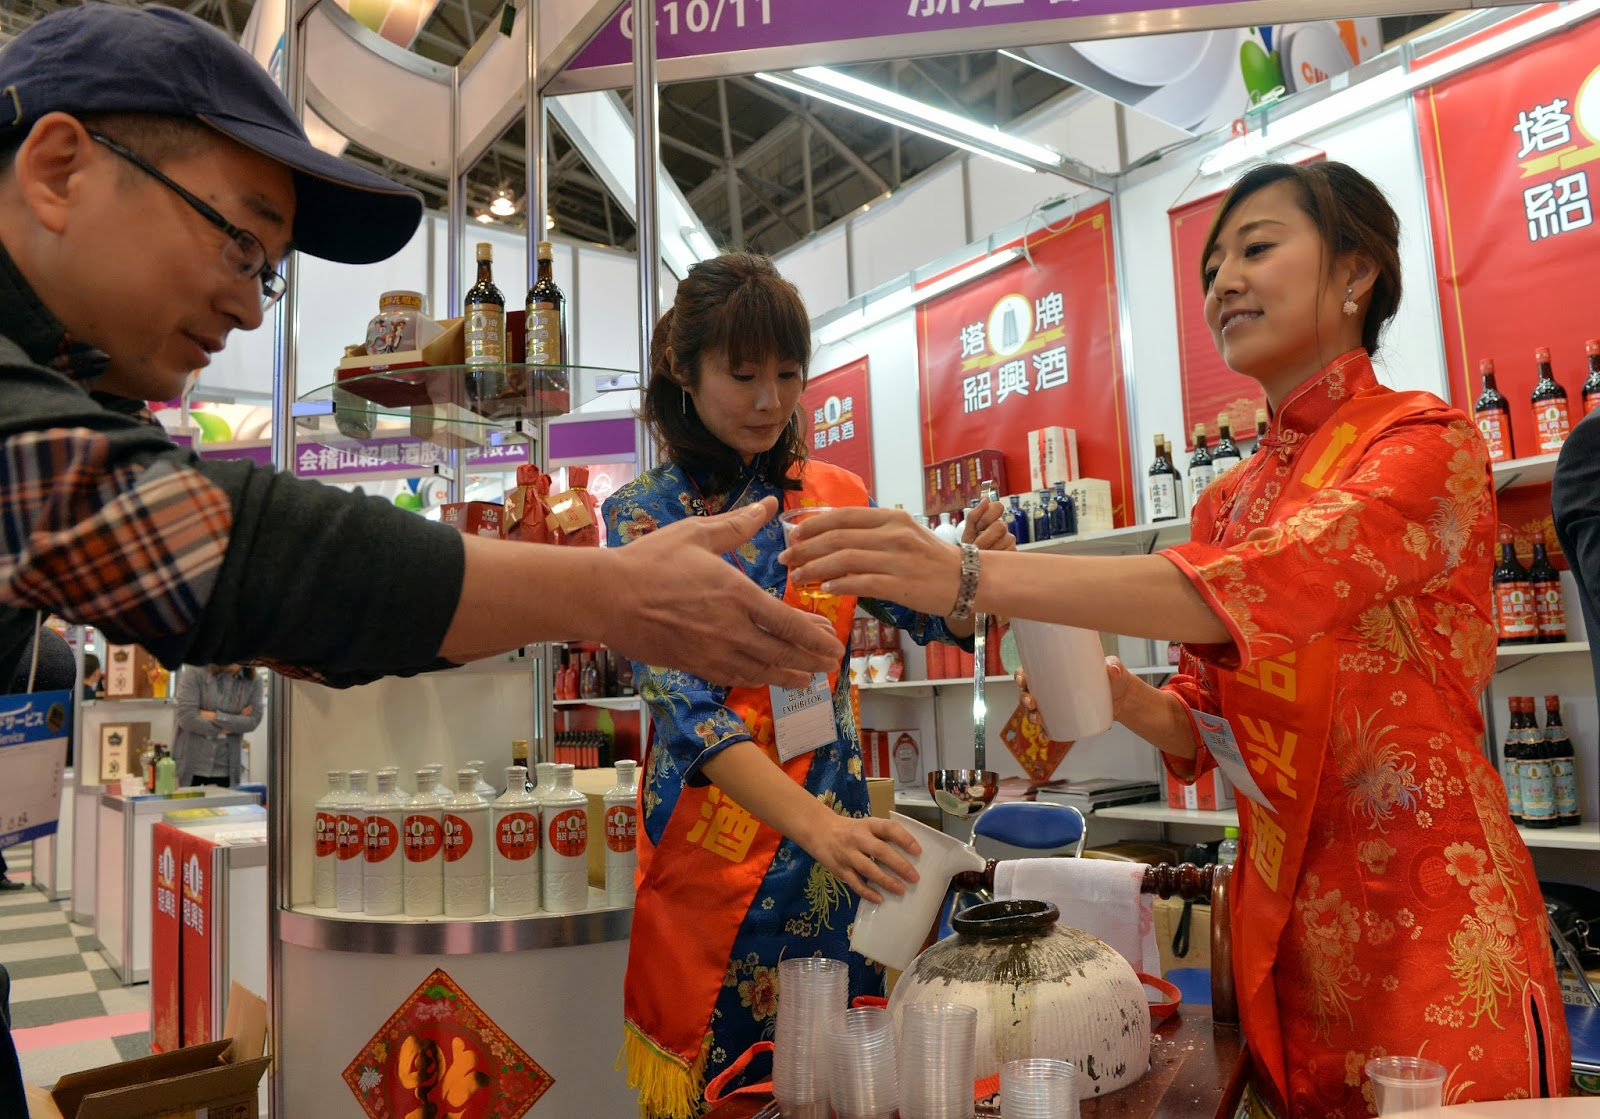 Annual, Business, Caroline Kennedy, Chiba, Diplomacy, Economy, Food, Food Exhibition, Foodex, Foodex Japan, Japan, Perky Jerky, Stall, Tokyo, Trade Show, Trans-Pacific Partnership-TTP, Turkey, US,